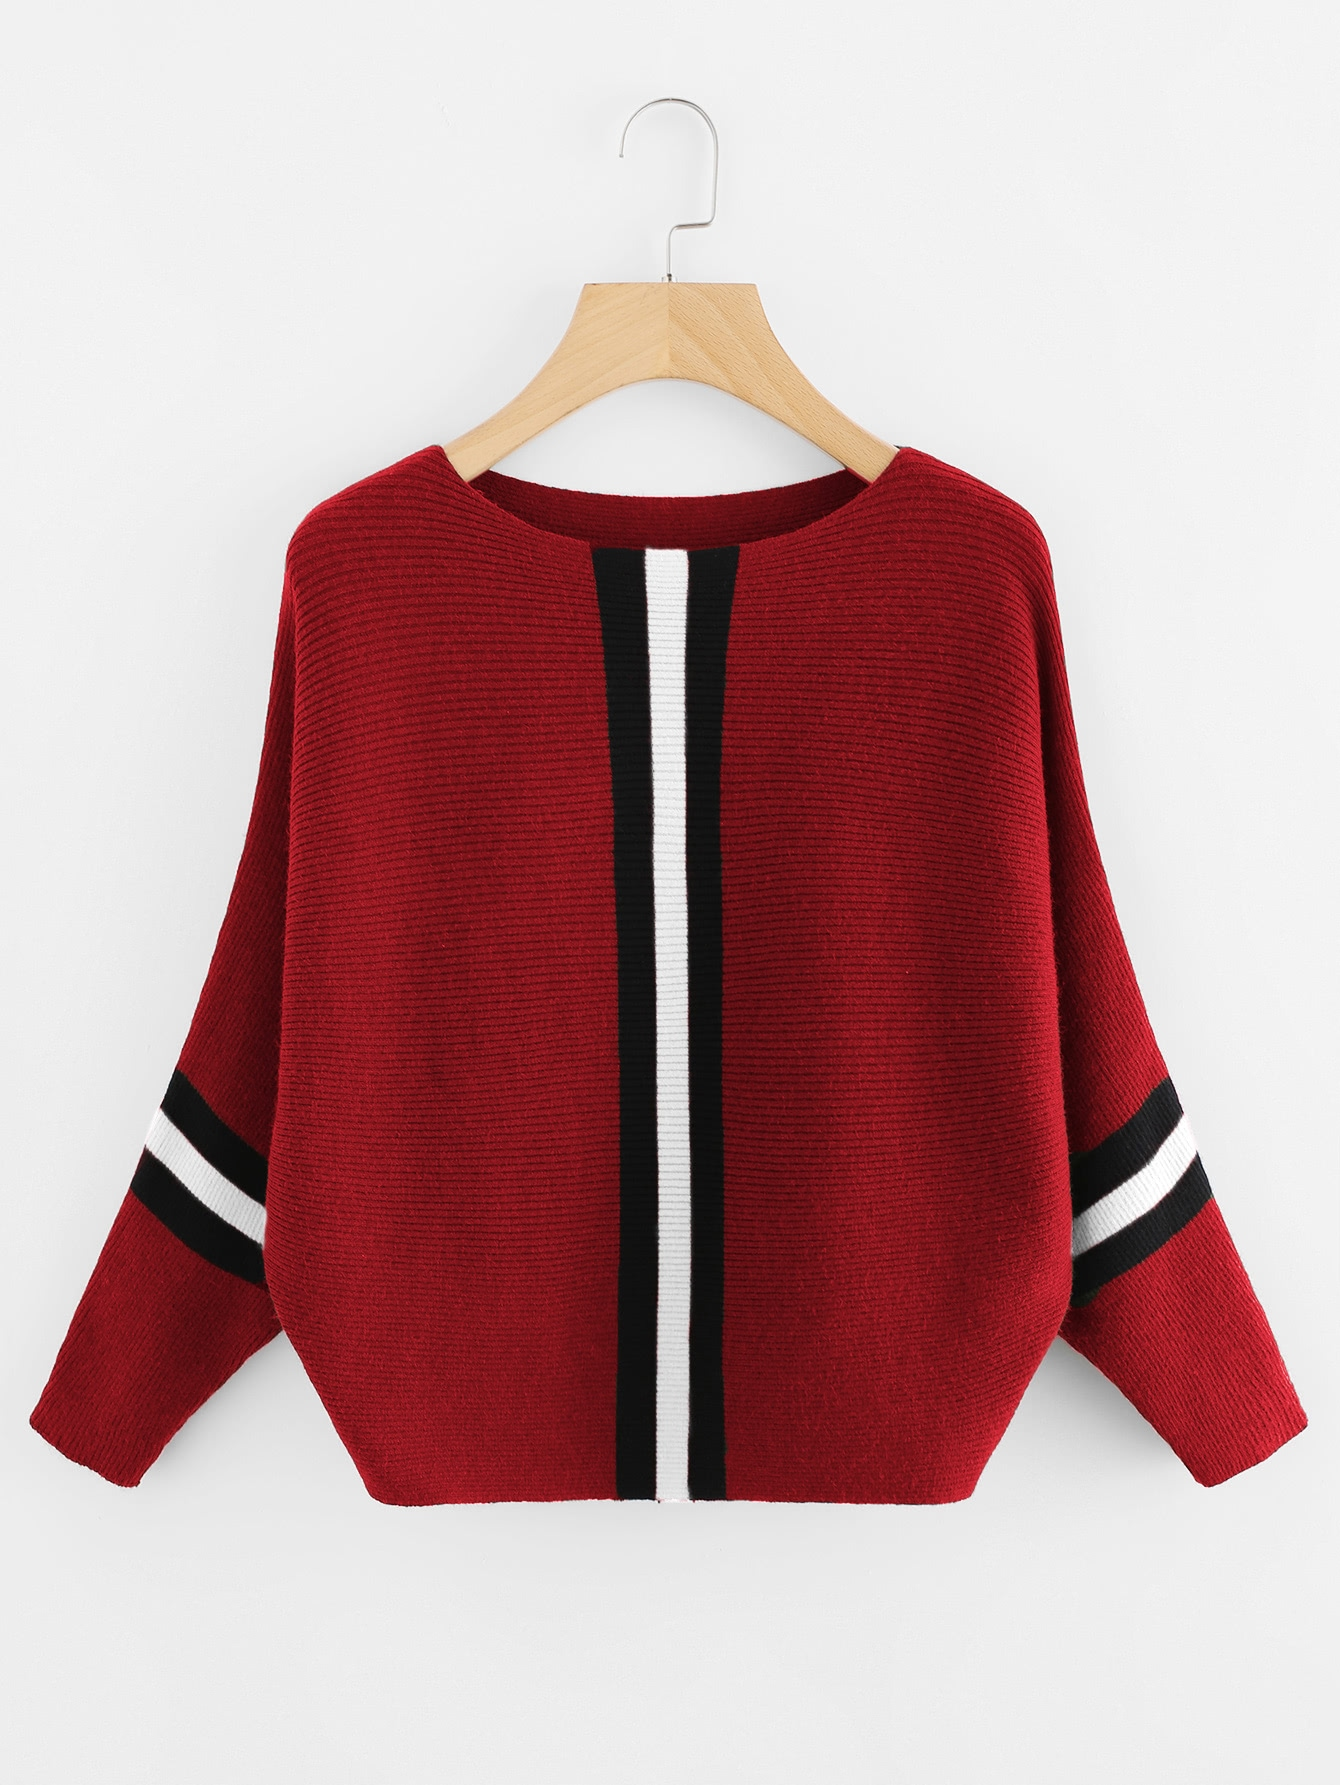 Contrast Striped Panel Ribbed Sweater sweater171106072